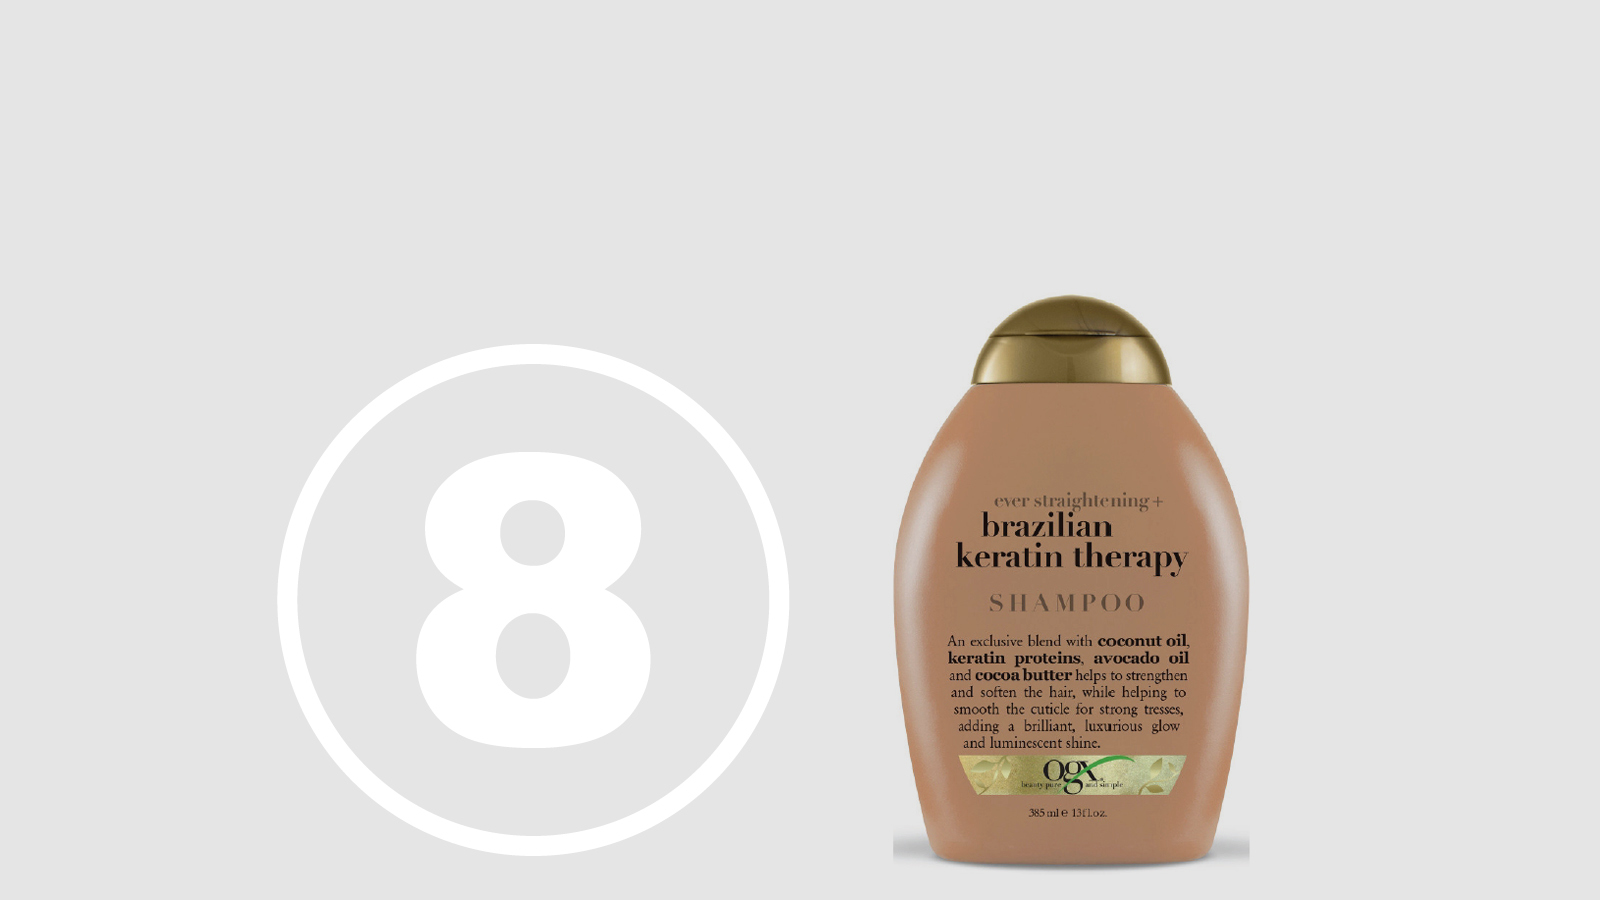 """<h5>Top Ten Most Hazardous Products</h5><h4>Organix (OGX) Shampoo</h4><p>A Johnson & Johnson product marketed as part of a """"green/sustainable"""" line of products to young women.<br />We found <span class=""""highlight"""">13 chemicals</span> chemicals linked to chronic health effects with <span class=""""highlight"""">84.6% hidden in """"fragrance.""""</span></p>"""